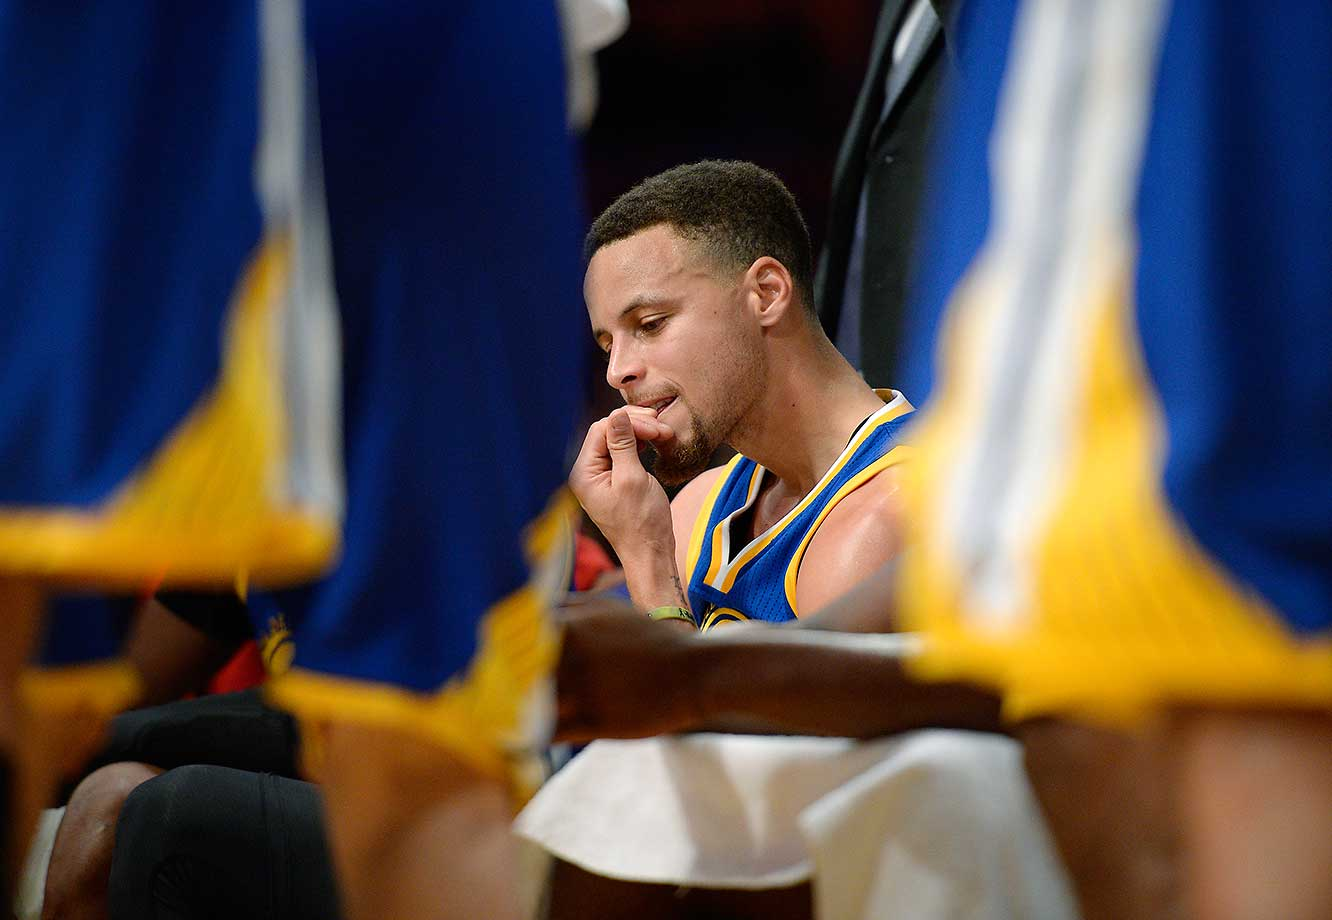 No one expected Sunday's Lakers-Warriors game to be a nail-biter for Steph Curry & Co., but the Warriors losing 112-95 was stunning.